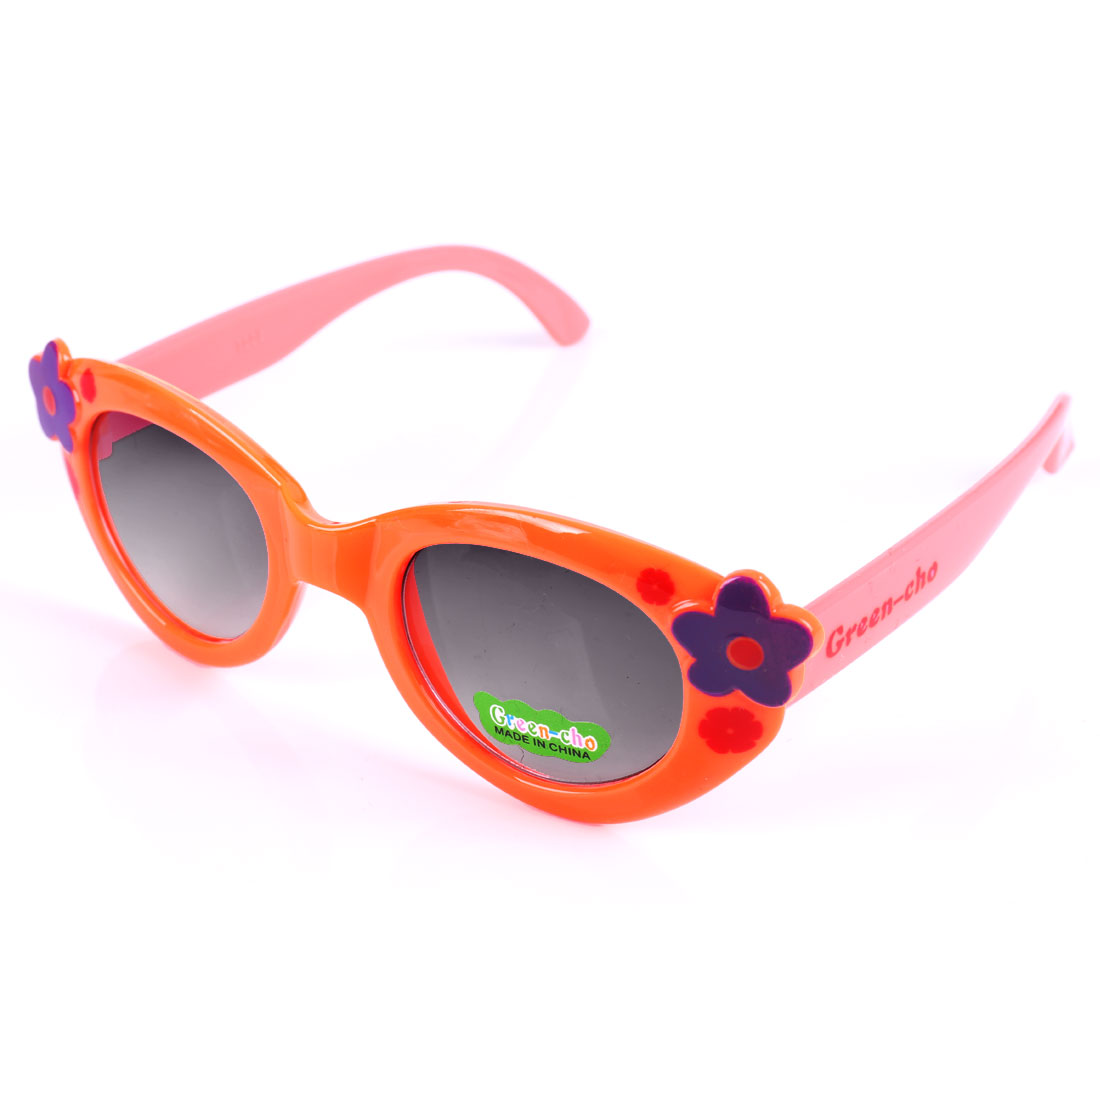 Fashion Girls Floral Pattern Color Blocking Sunglasses Coral Pink